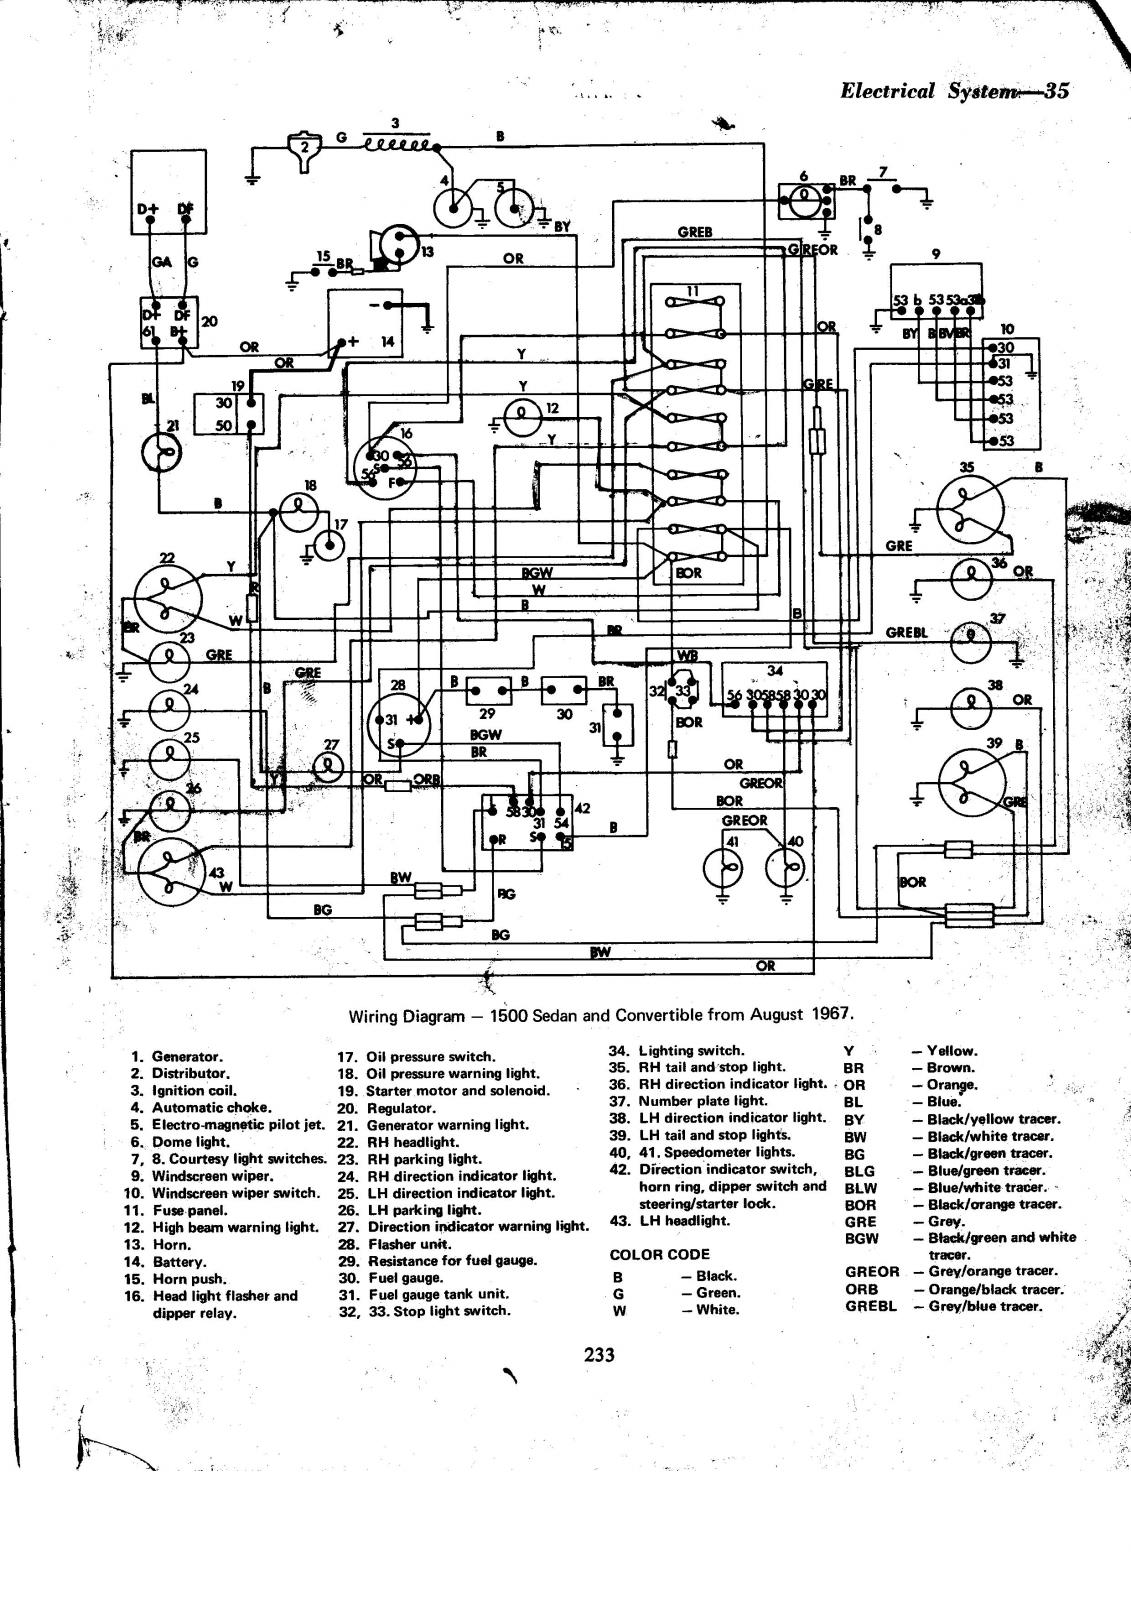 Wiring Diagram Australian RHD '68 model onwards